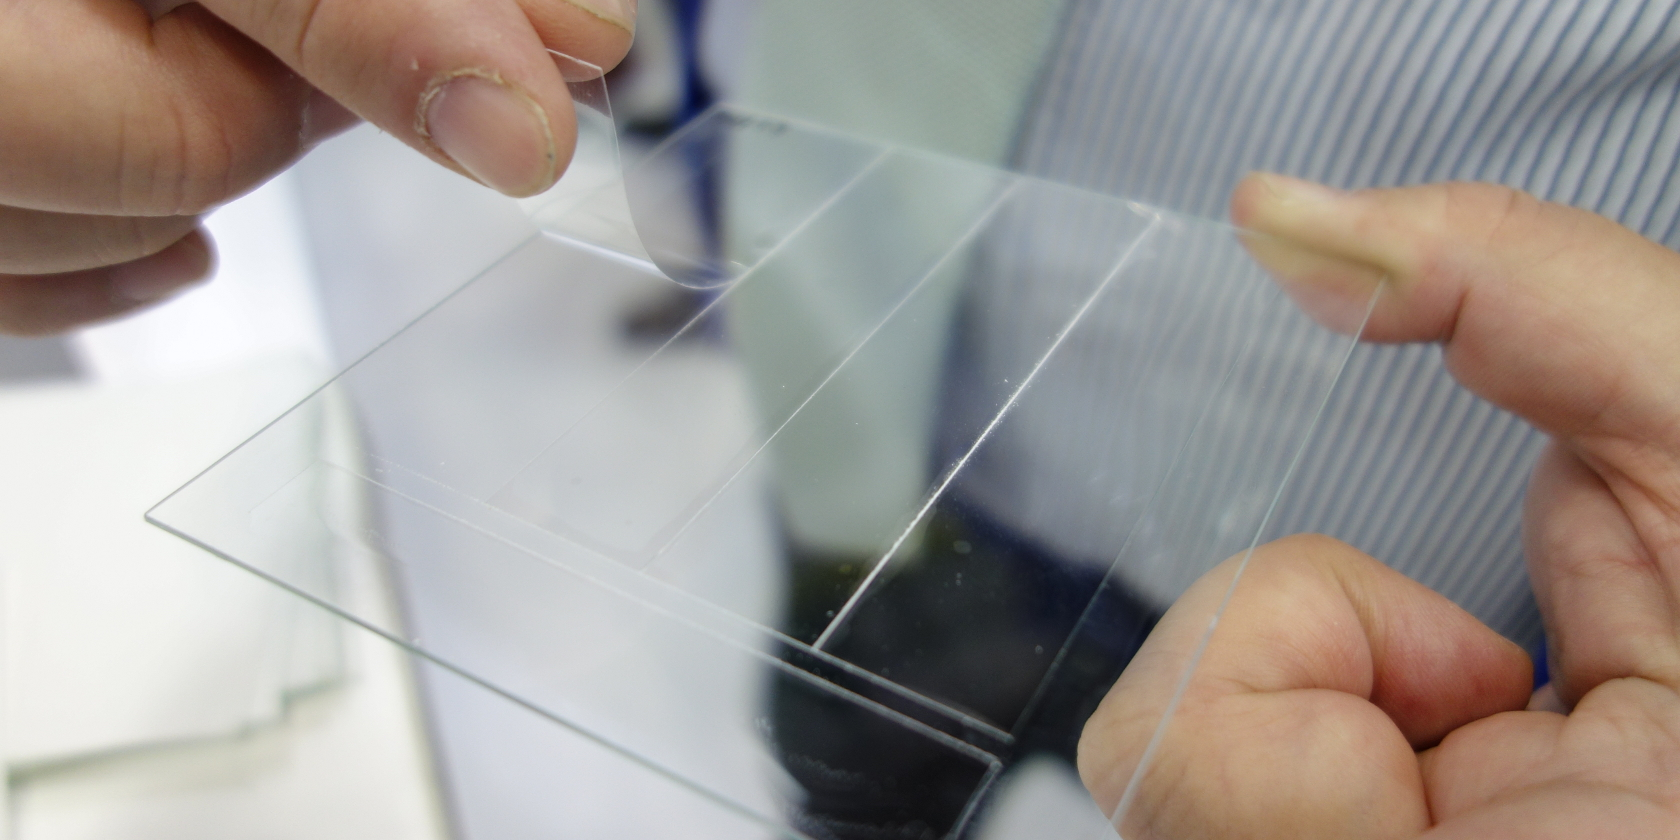 Nippon Kayaku Develops Flexible, Clear Resin for Next-Gen Panels